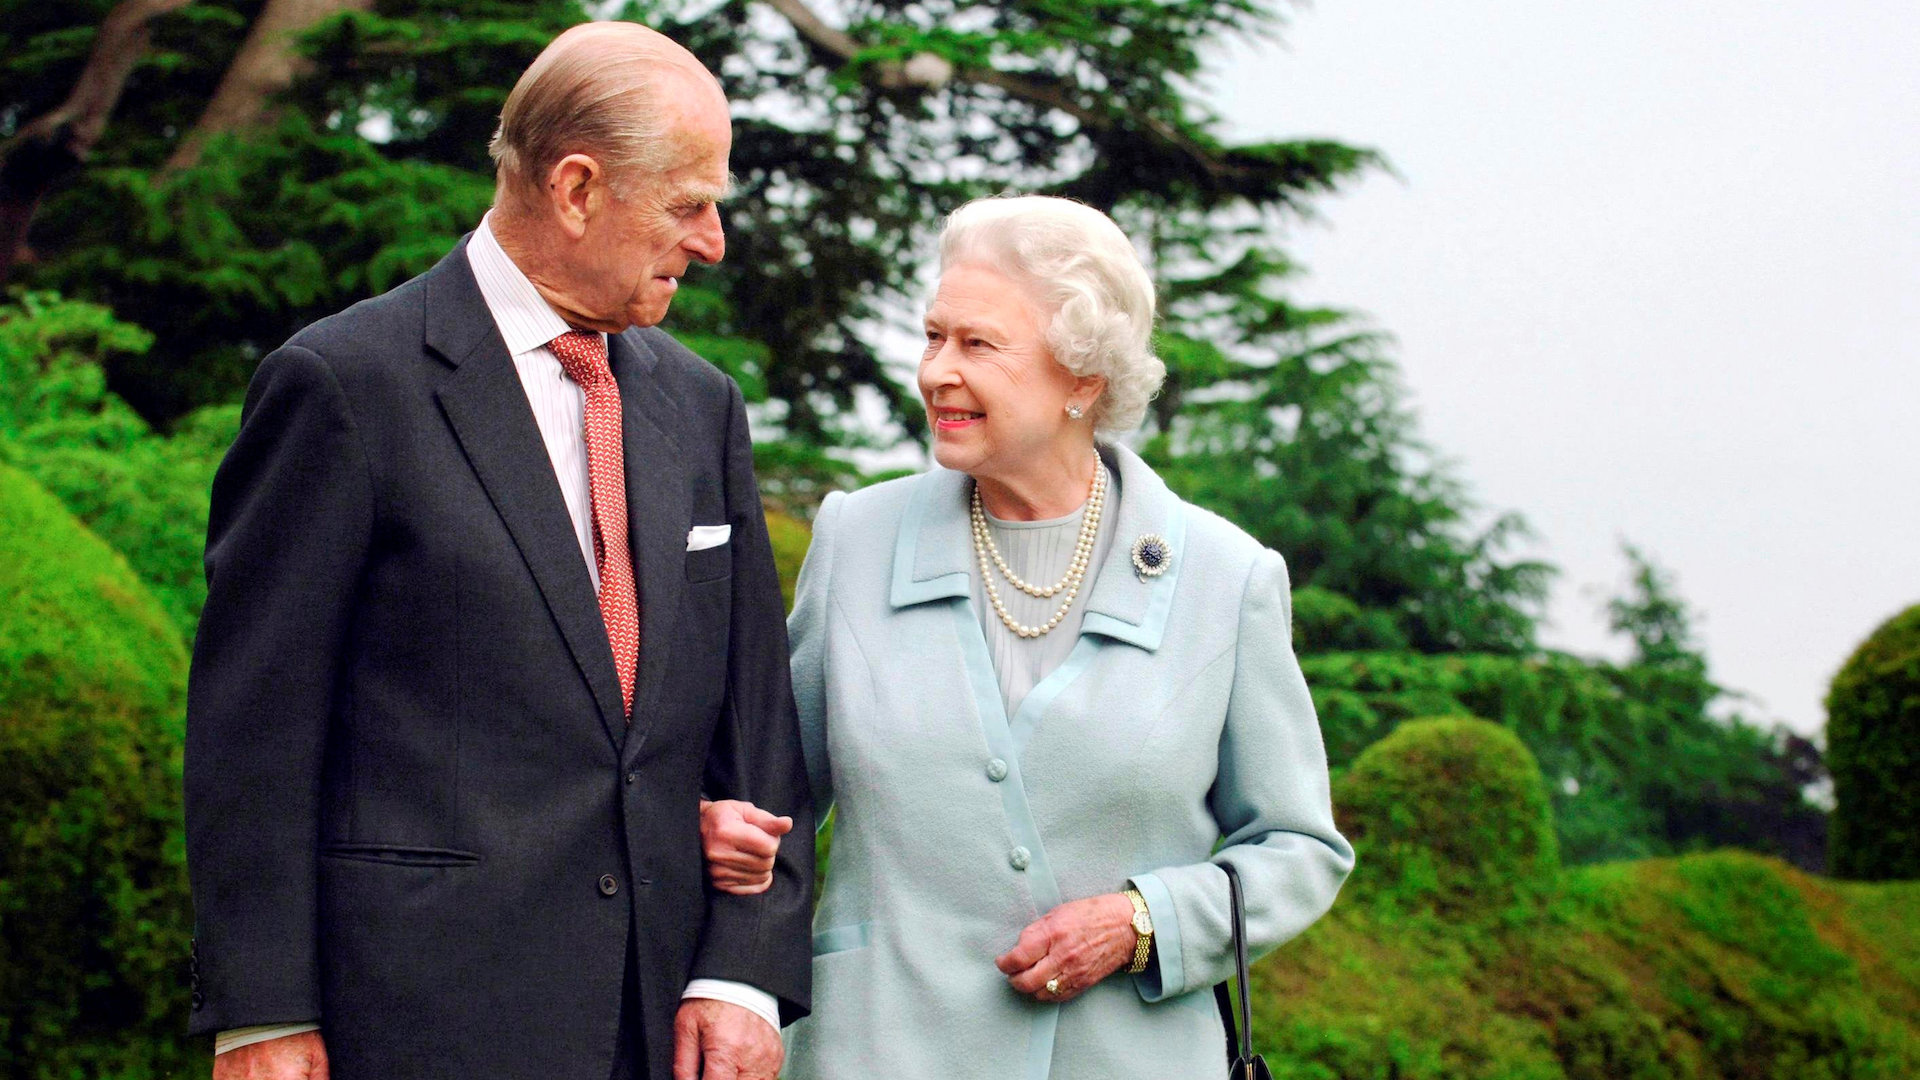 'When your granny trolls the entire world': Brits react to Prince Philip's retirement with trademark sarcasm